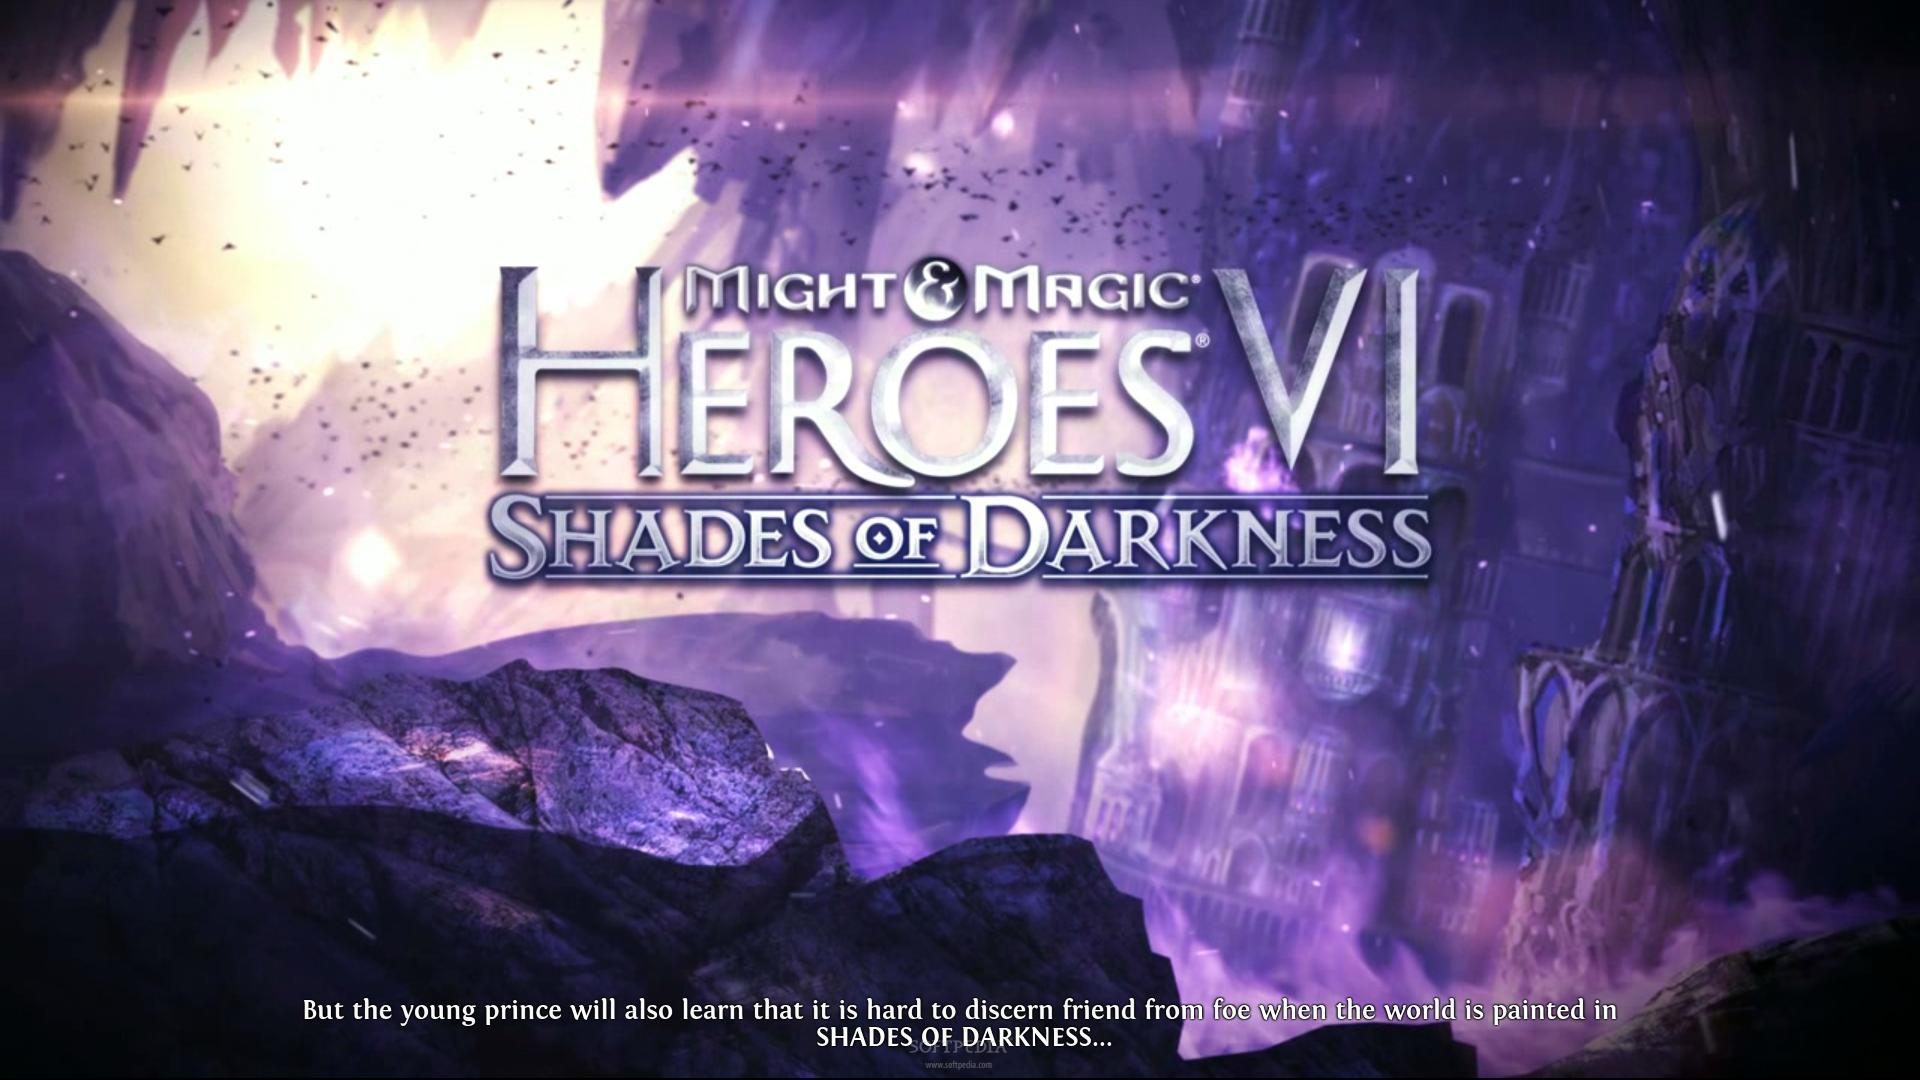 M & M Heroes VI Shades of Darkness [Warranty 5 years] 2019